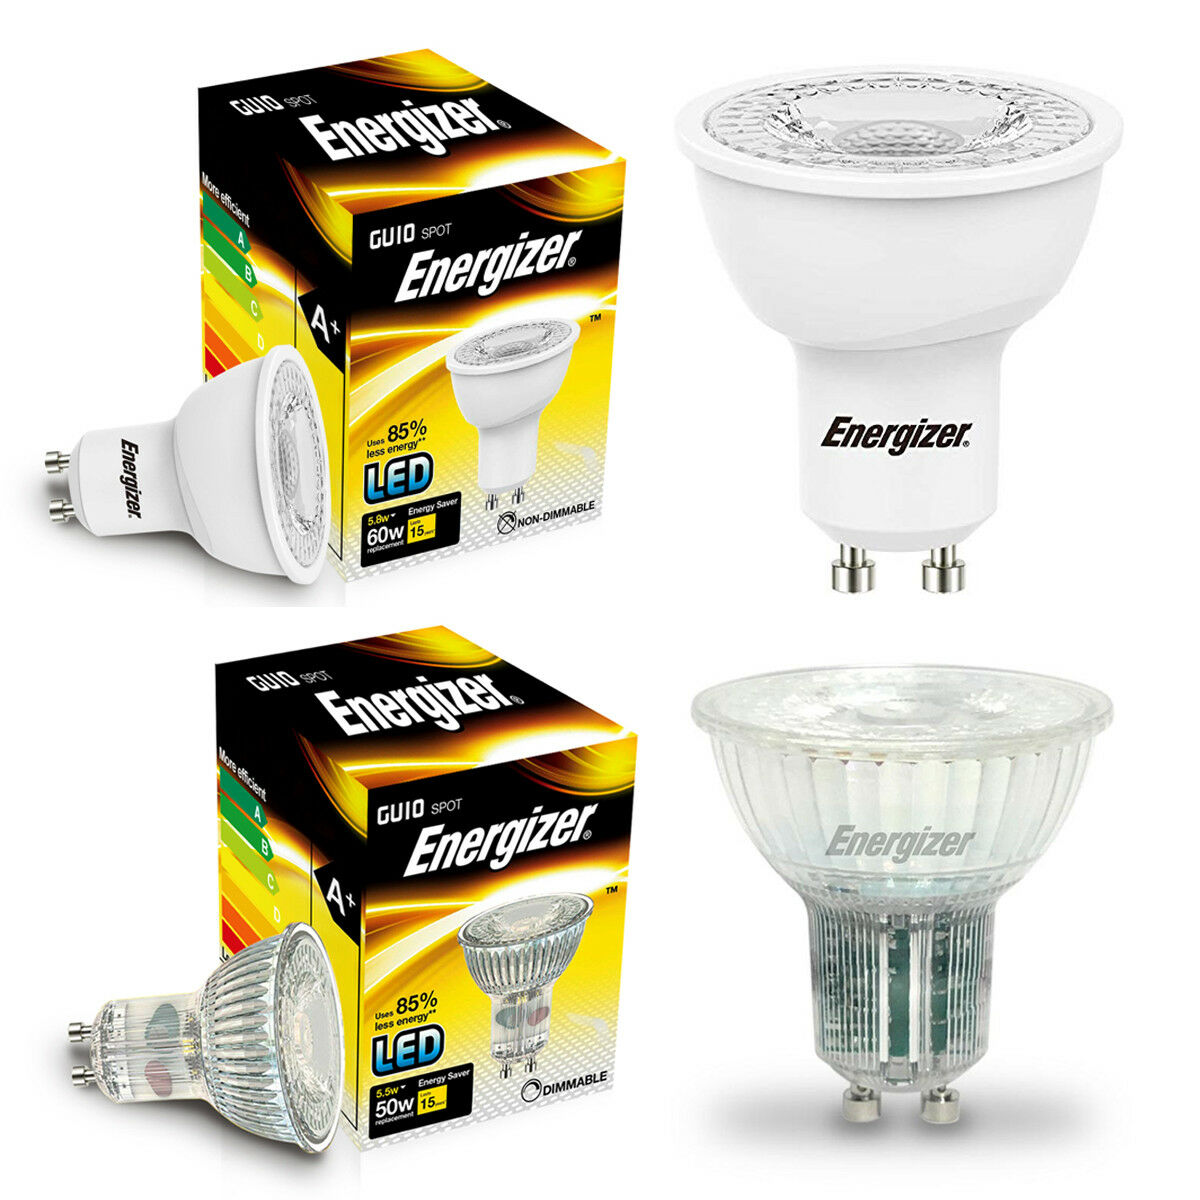 Led Gu10 5w Details About Packs Of Energizer Led Gu10 3w 35w 5w 50w Spot Lights Daylight Cool Warm White